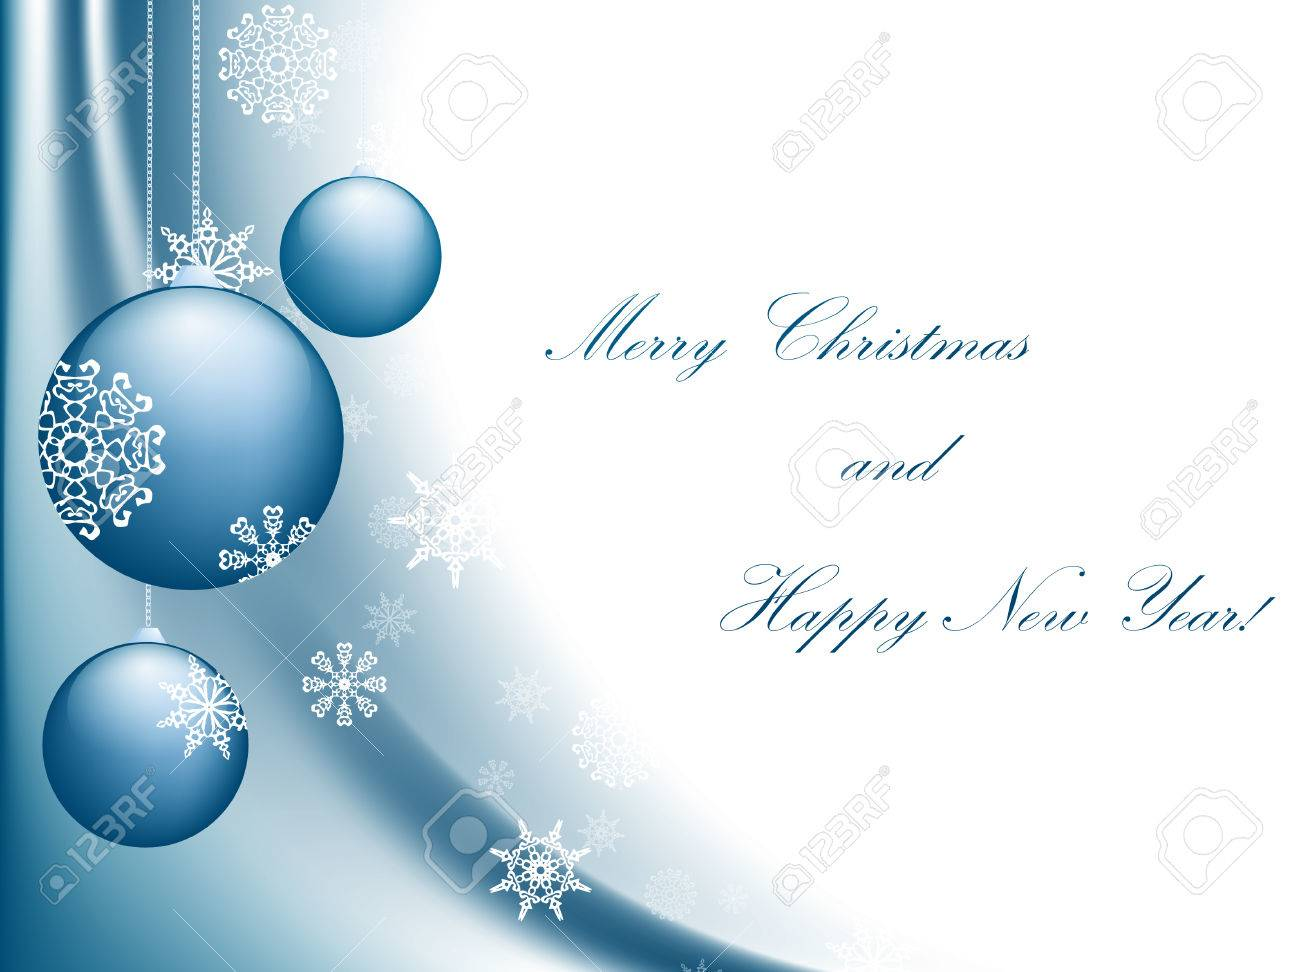 Merry Christmas and Happy New year greeting card with copyspace - 8056860